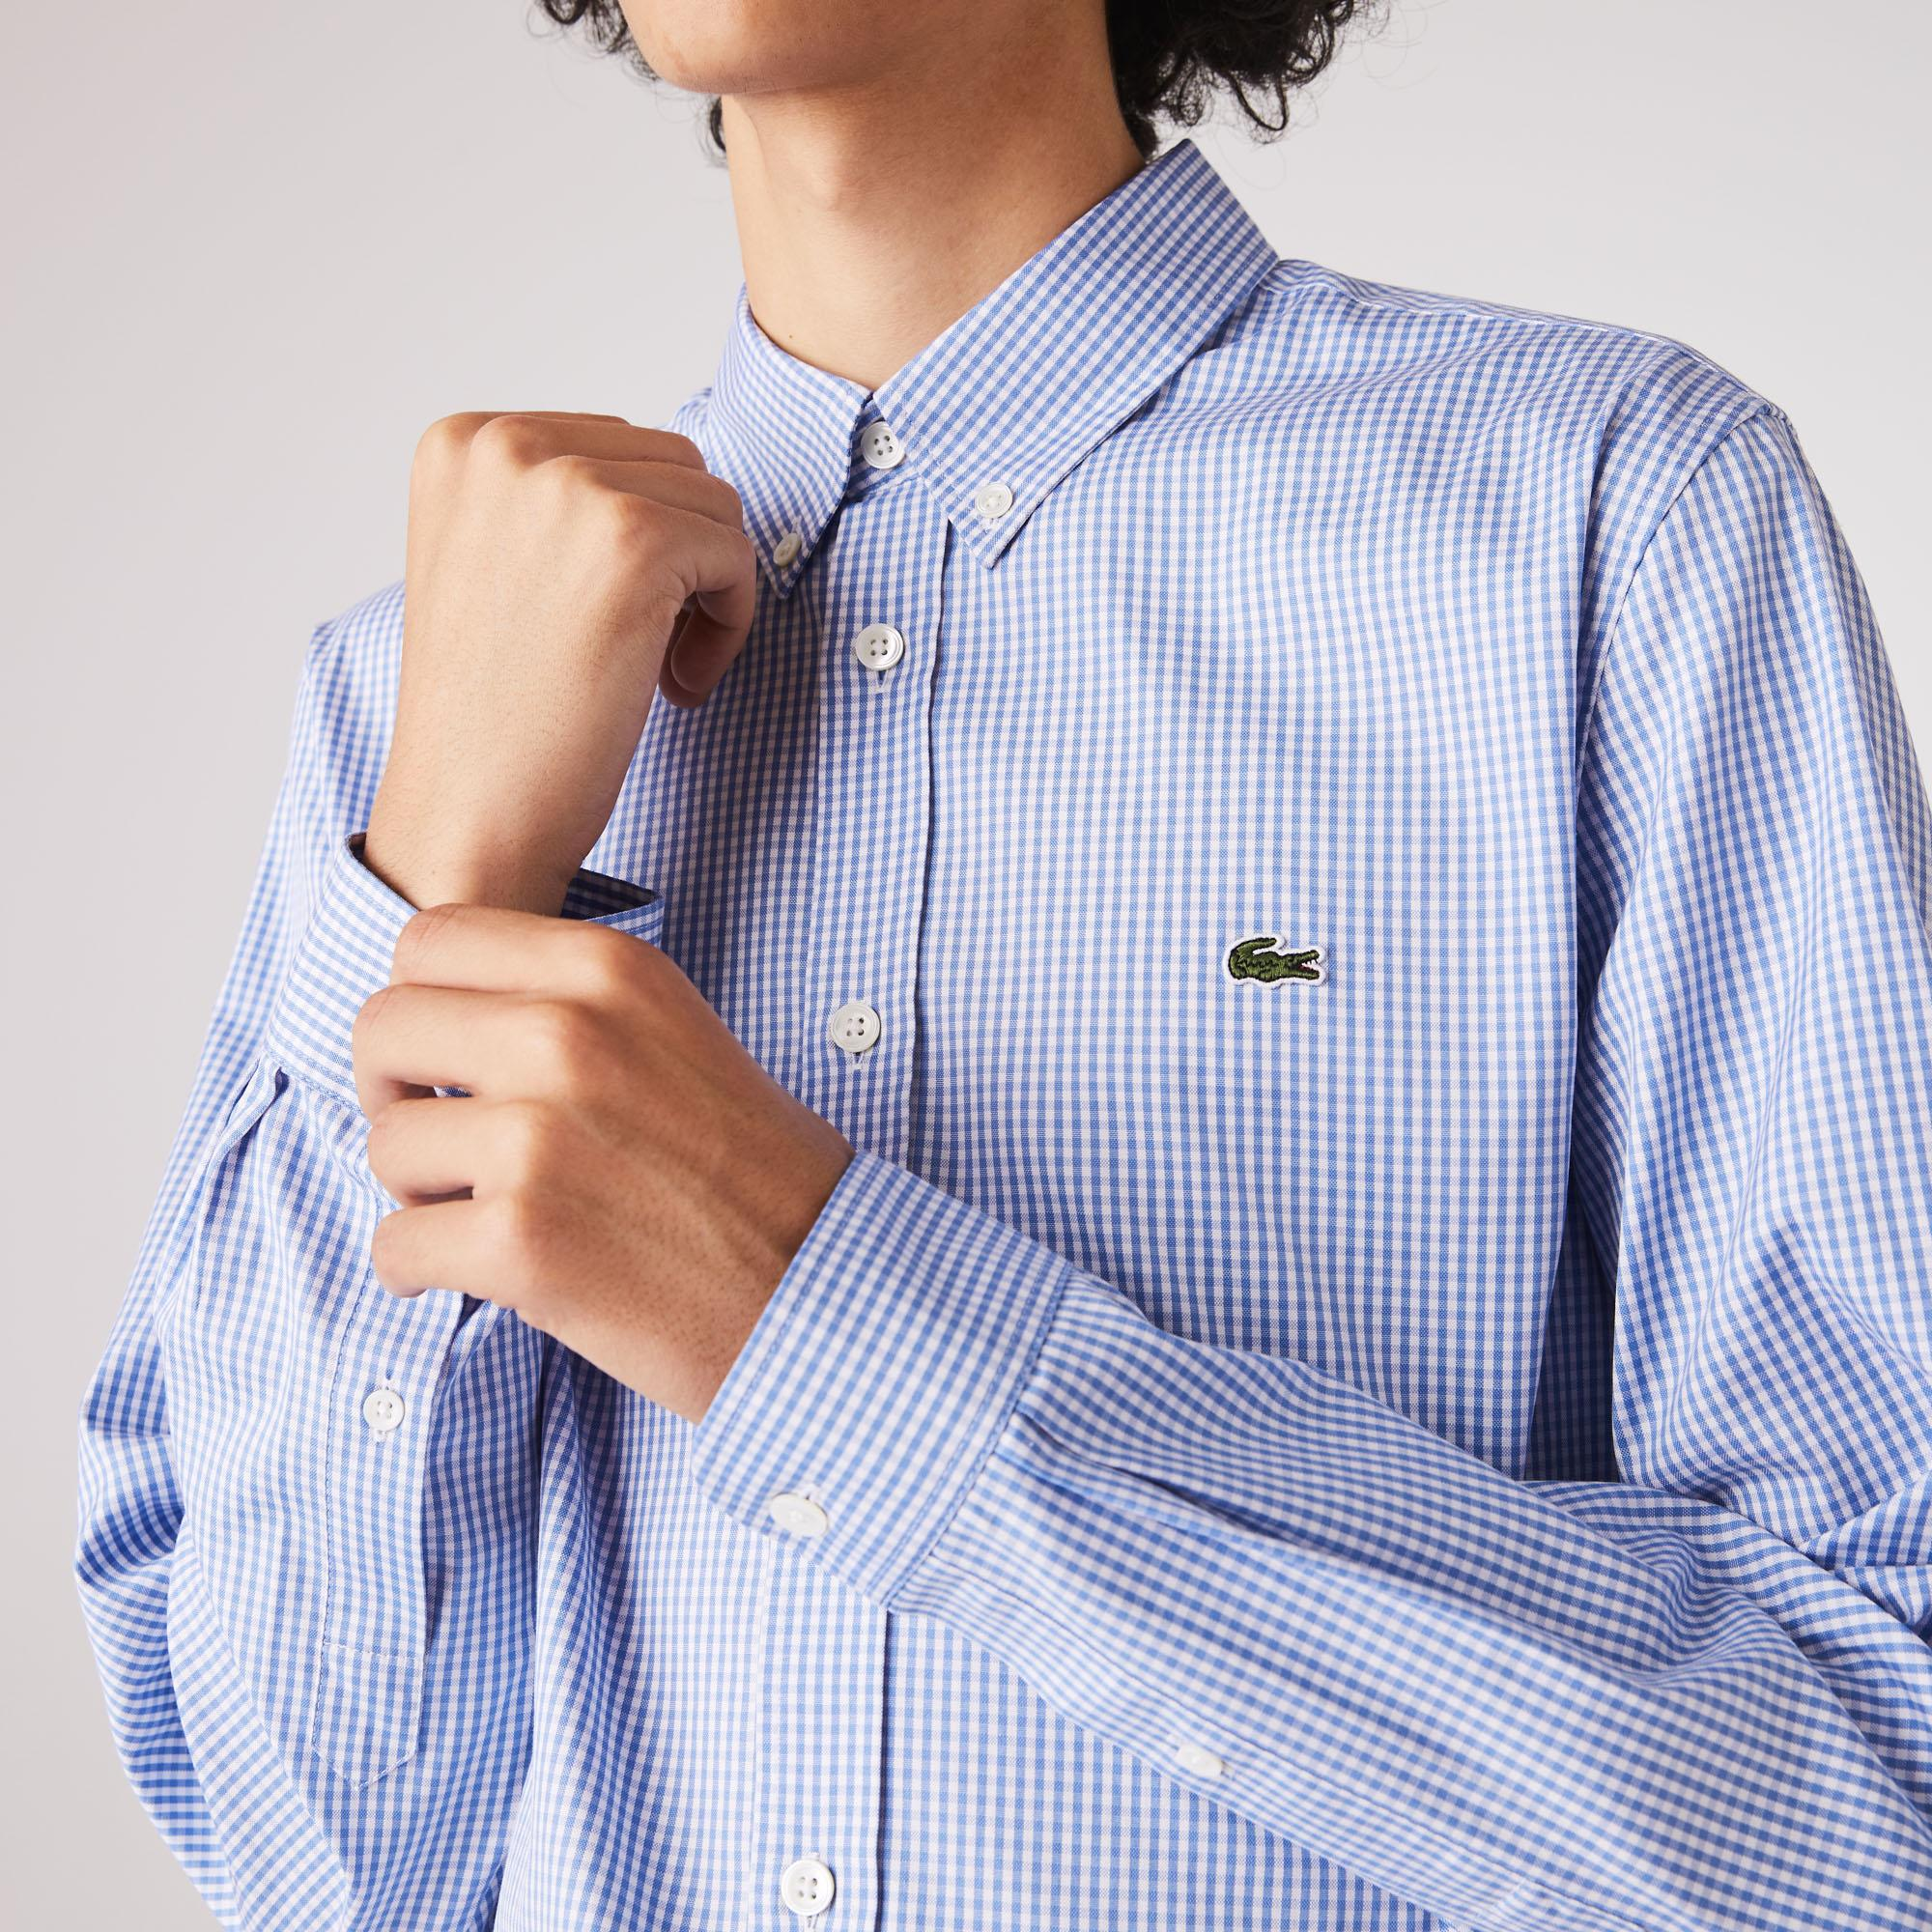 Lacoste Men's Regular Fit Checkered Premium Cotton Shirt